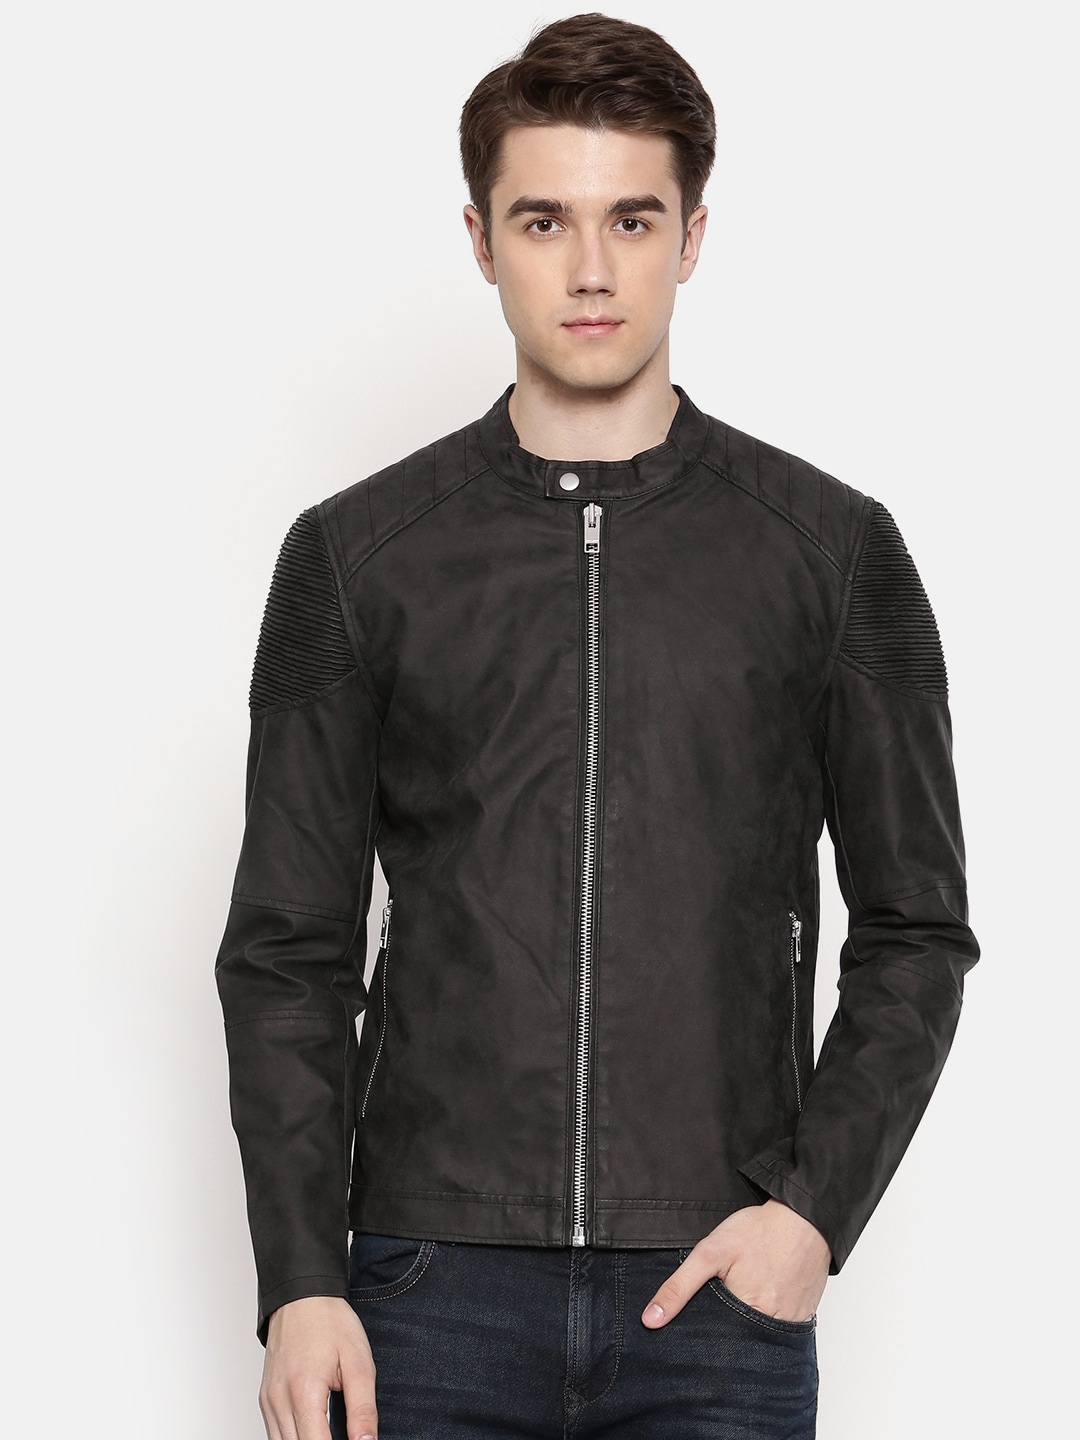 096d94201b6646 Jack   Jones Jacket - Buy Jackets from Jack   Jones Online